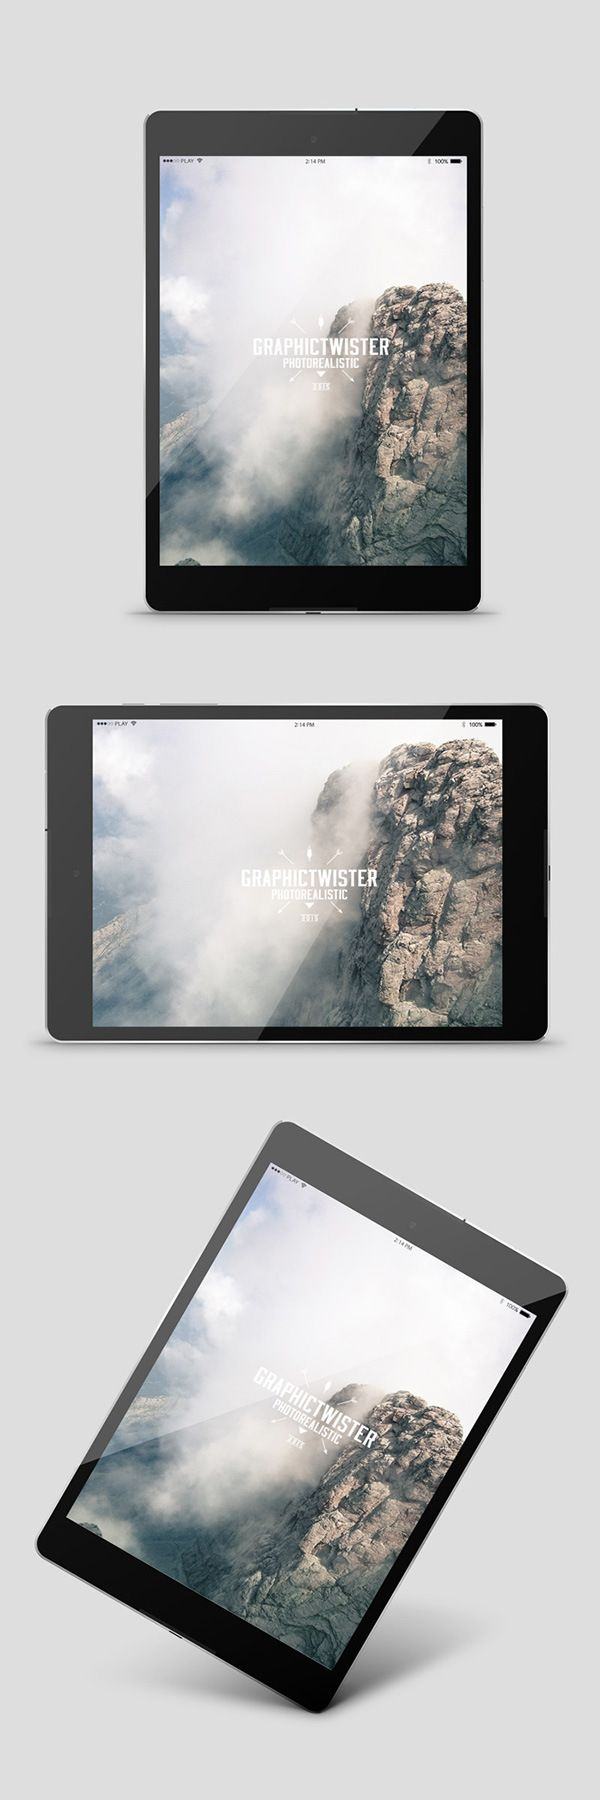 20 #Free #Smartphone & #Tablet Mock-up Templates These PSD templates include the latest mock-ups for mobile devices like Samsung galaxy s6, Iphone 6, Lumia and more.